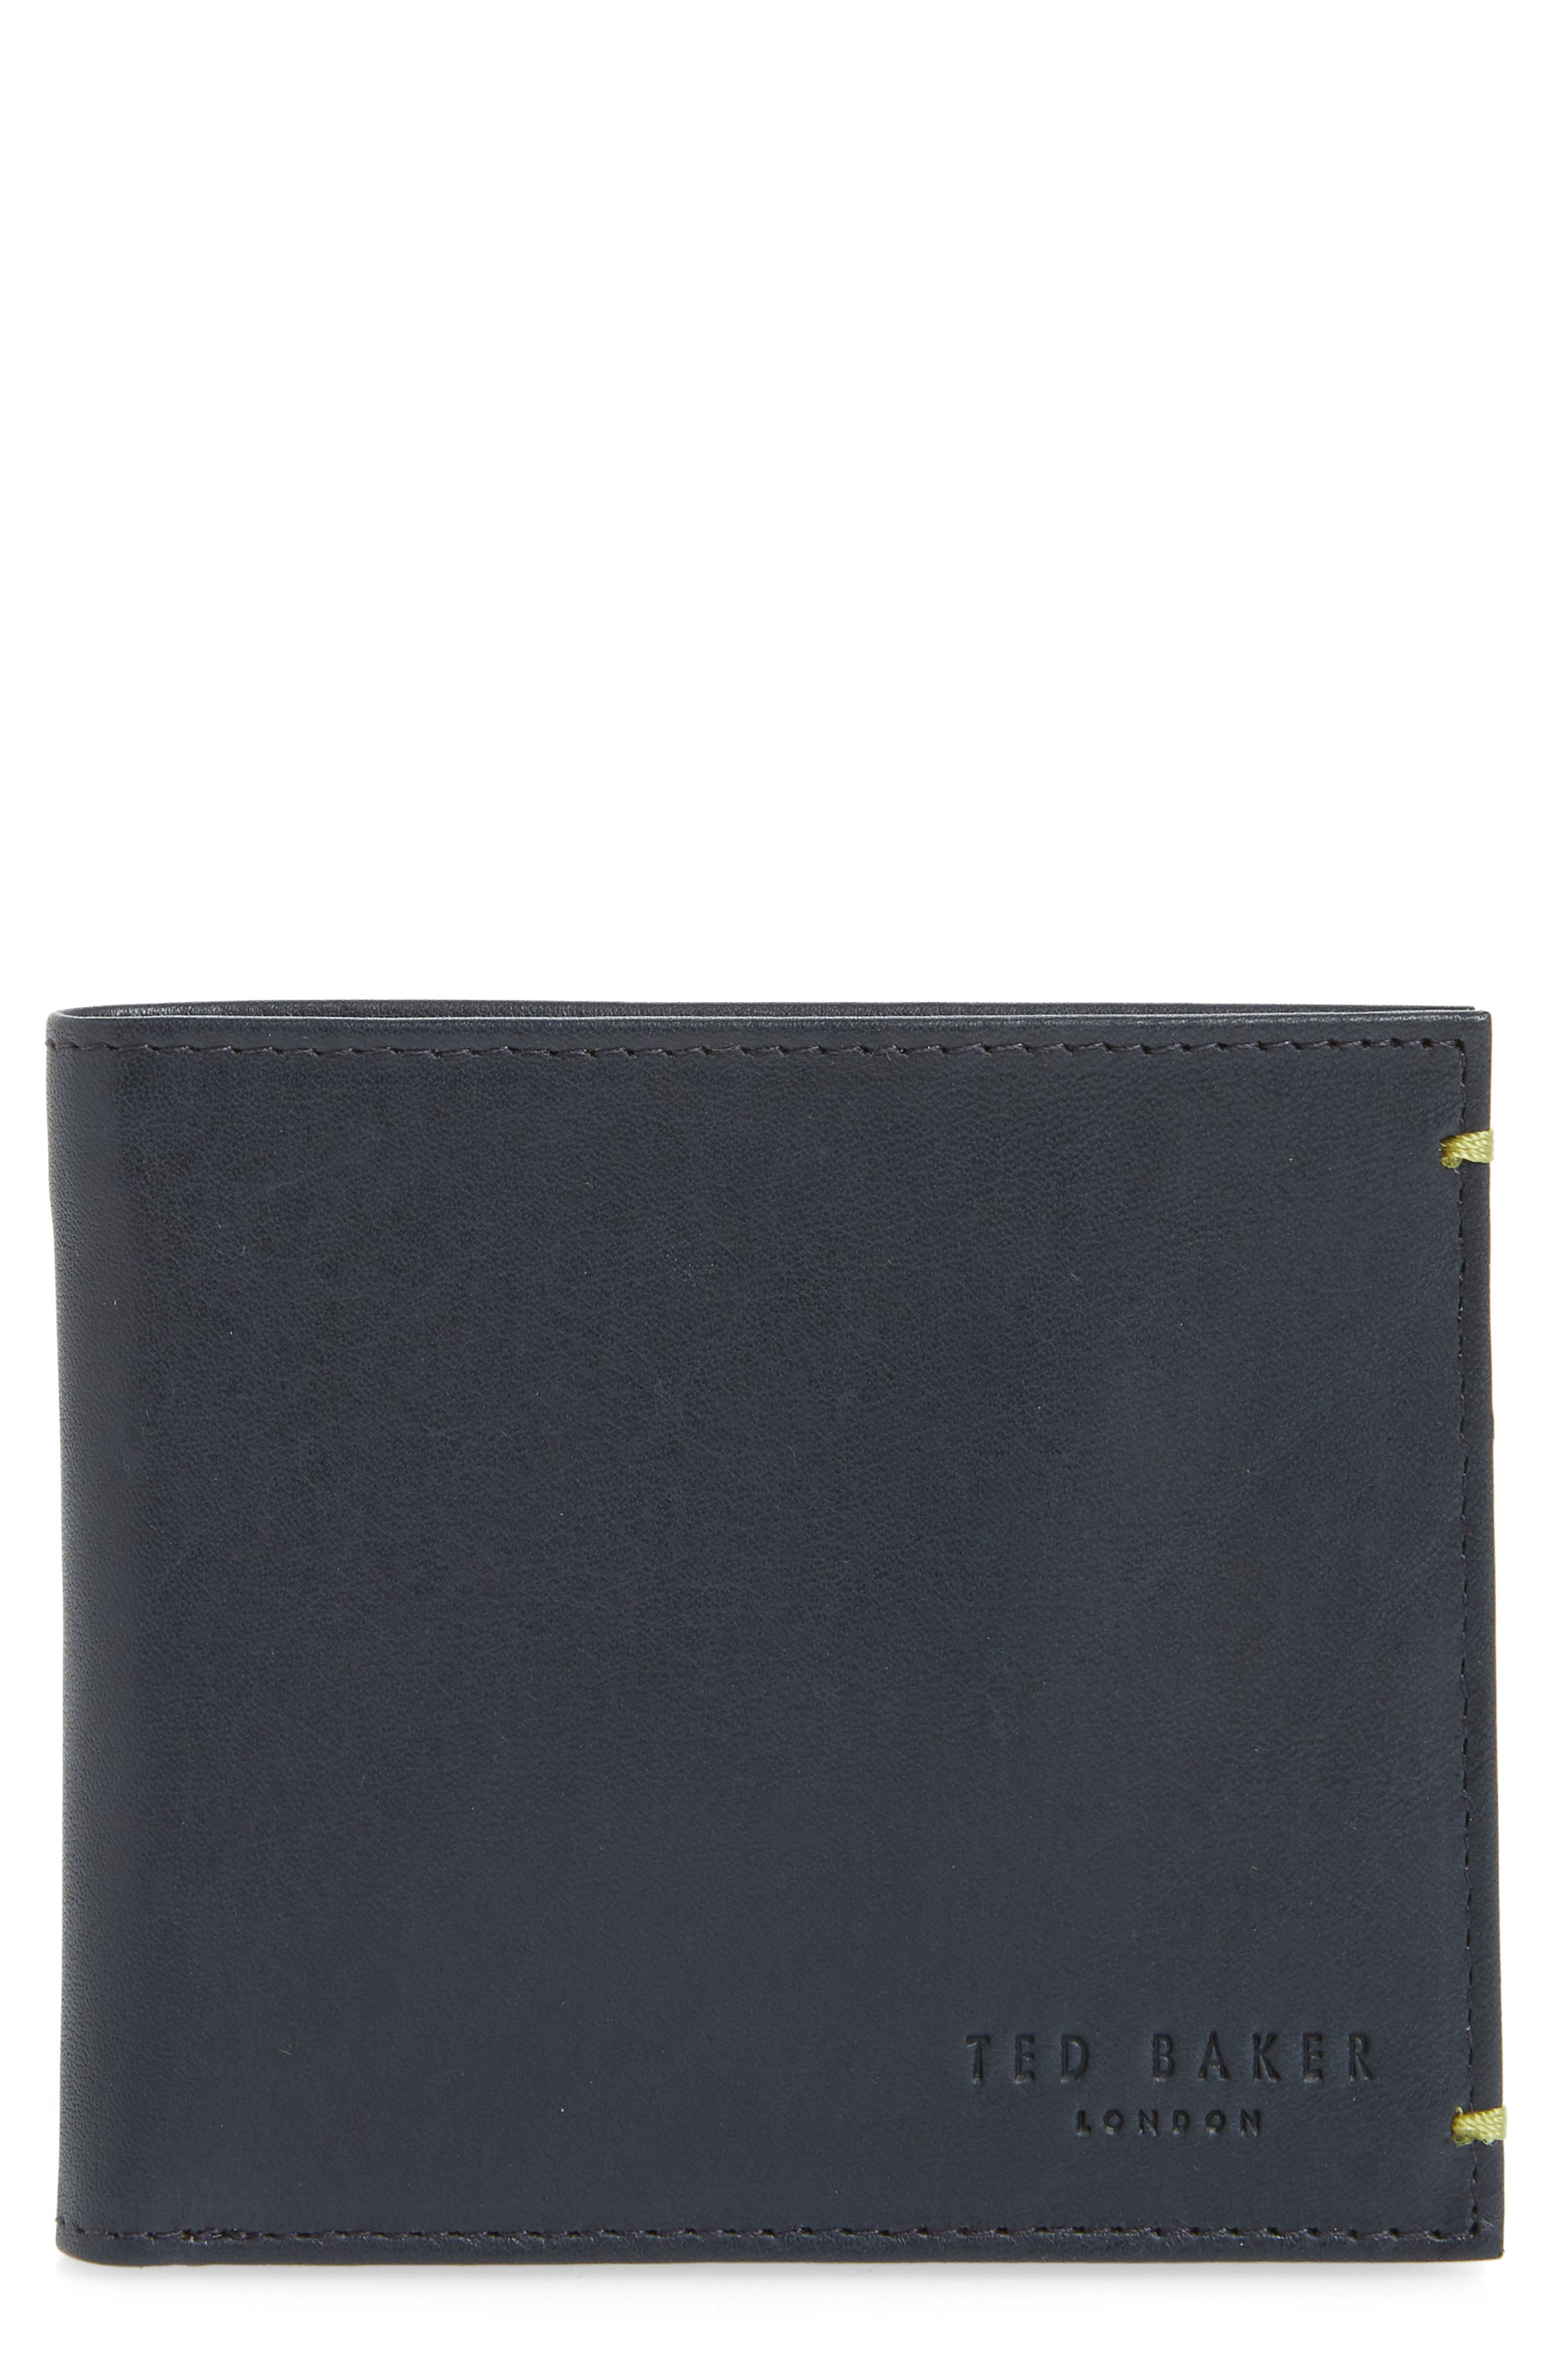 Rester Leather Bifold Wallet,                         Main,                         color, Navy